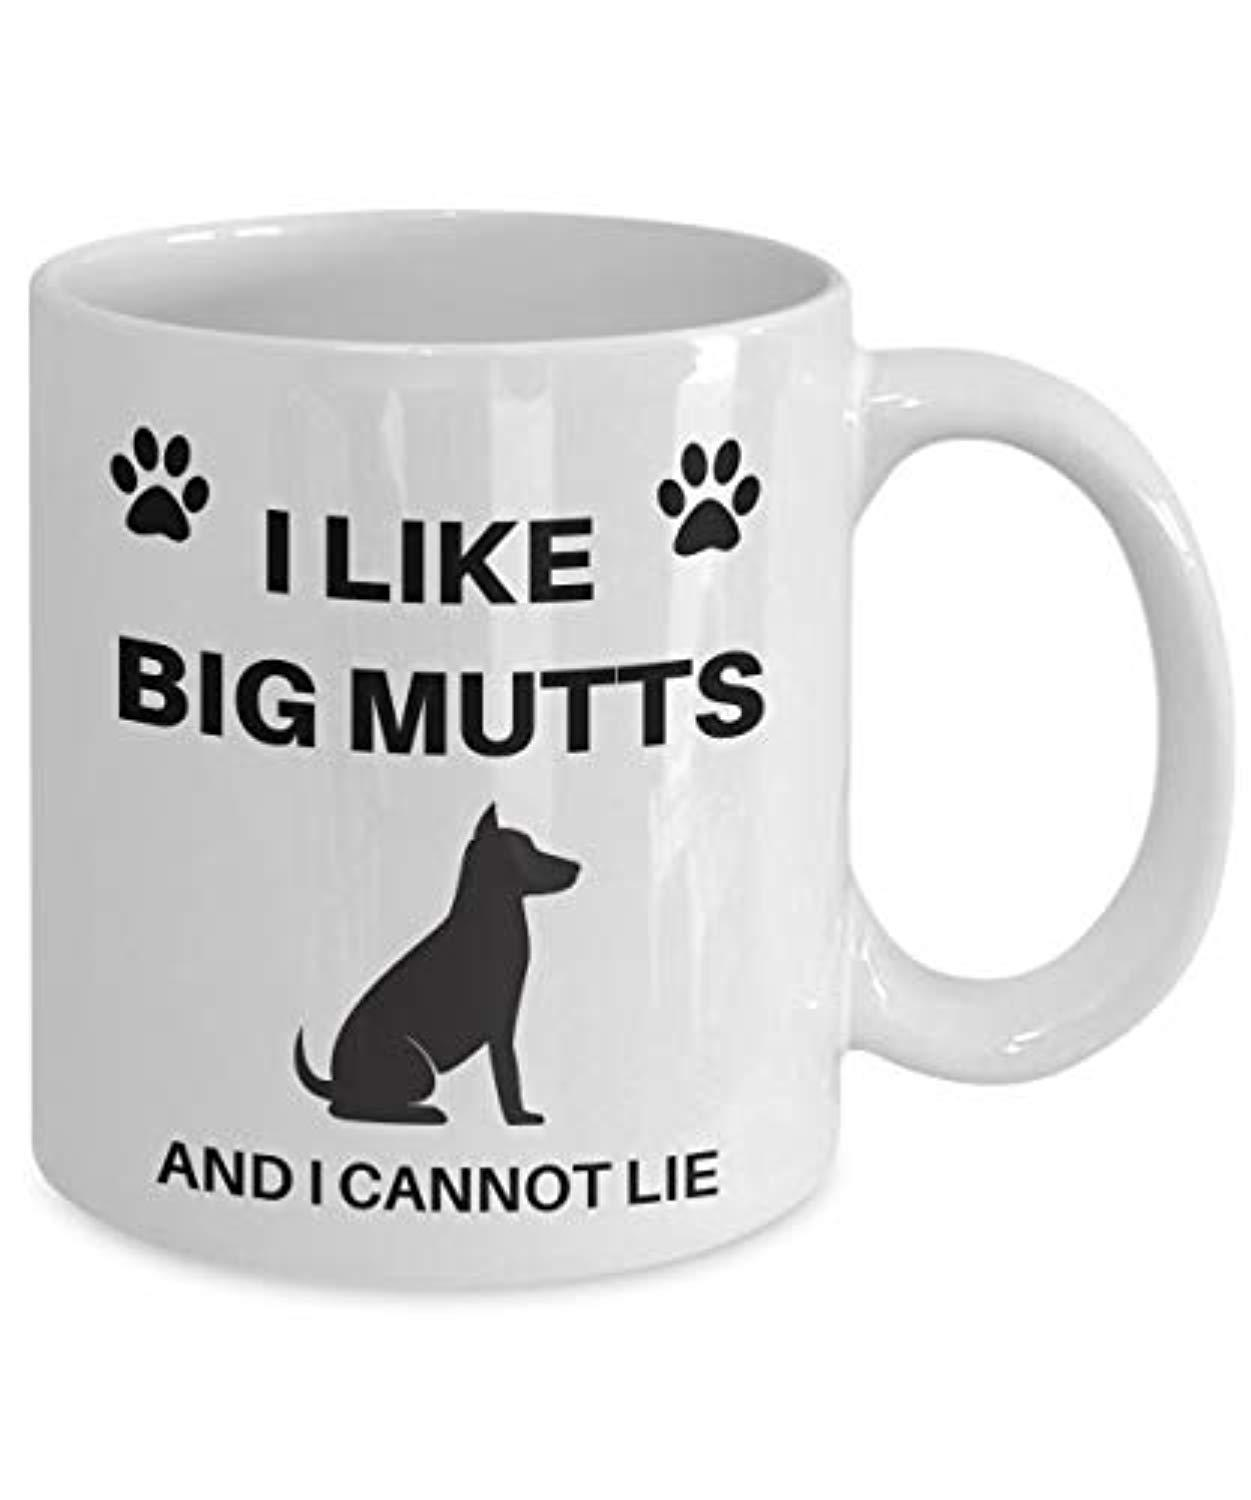 I Like Big Mutts And I Cannot Lie mug